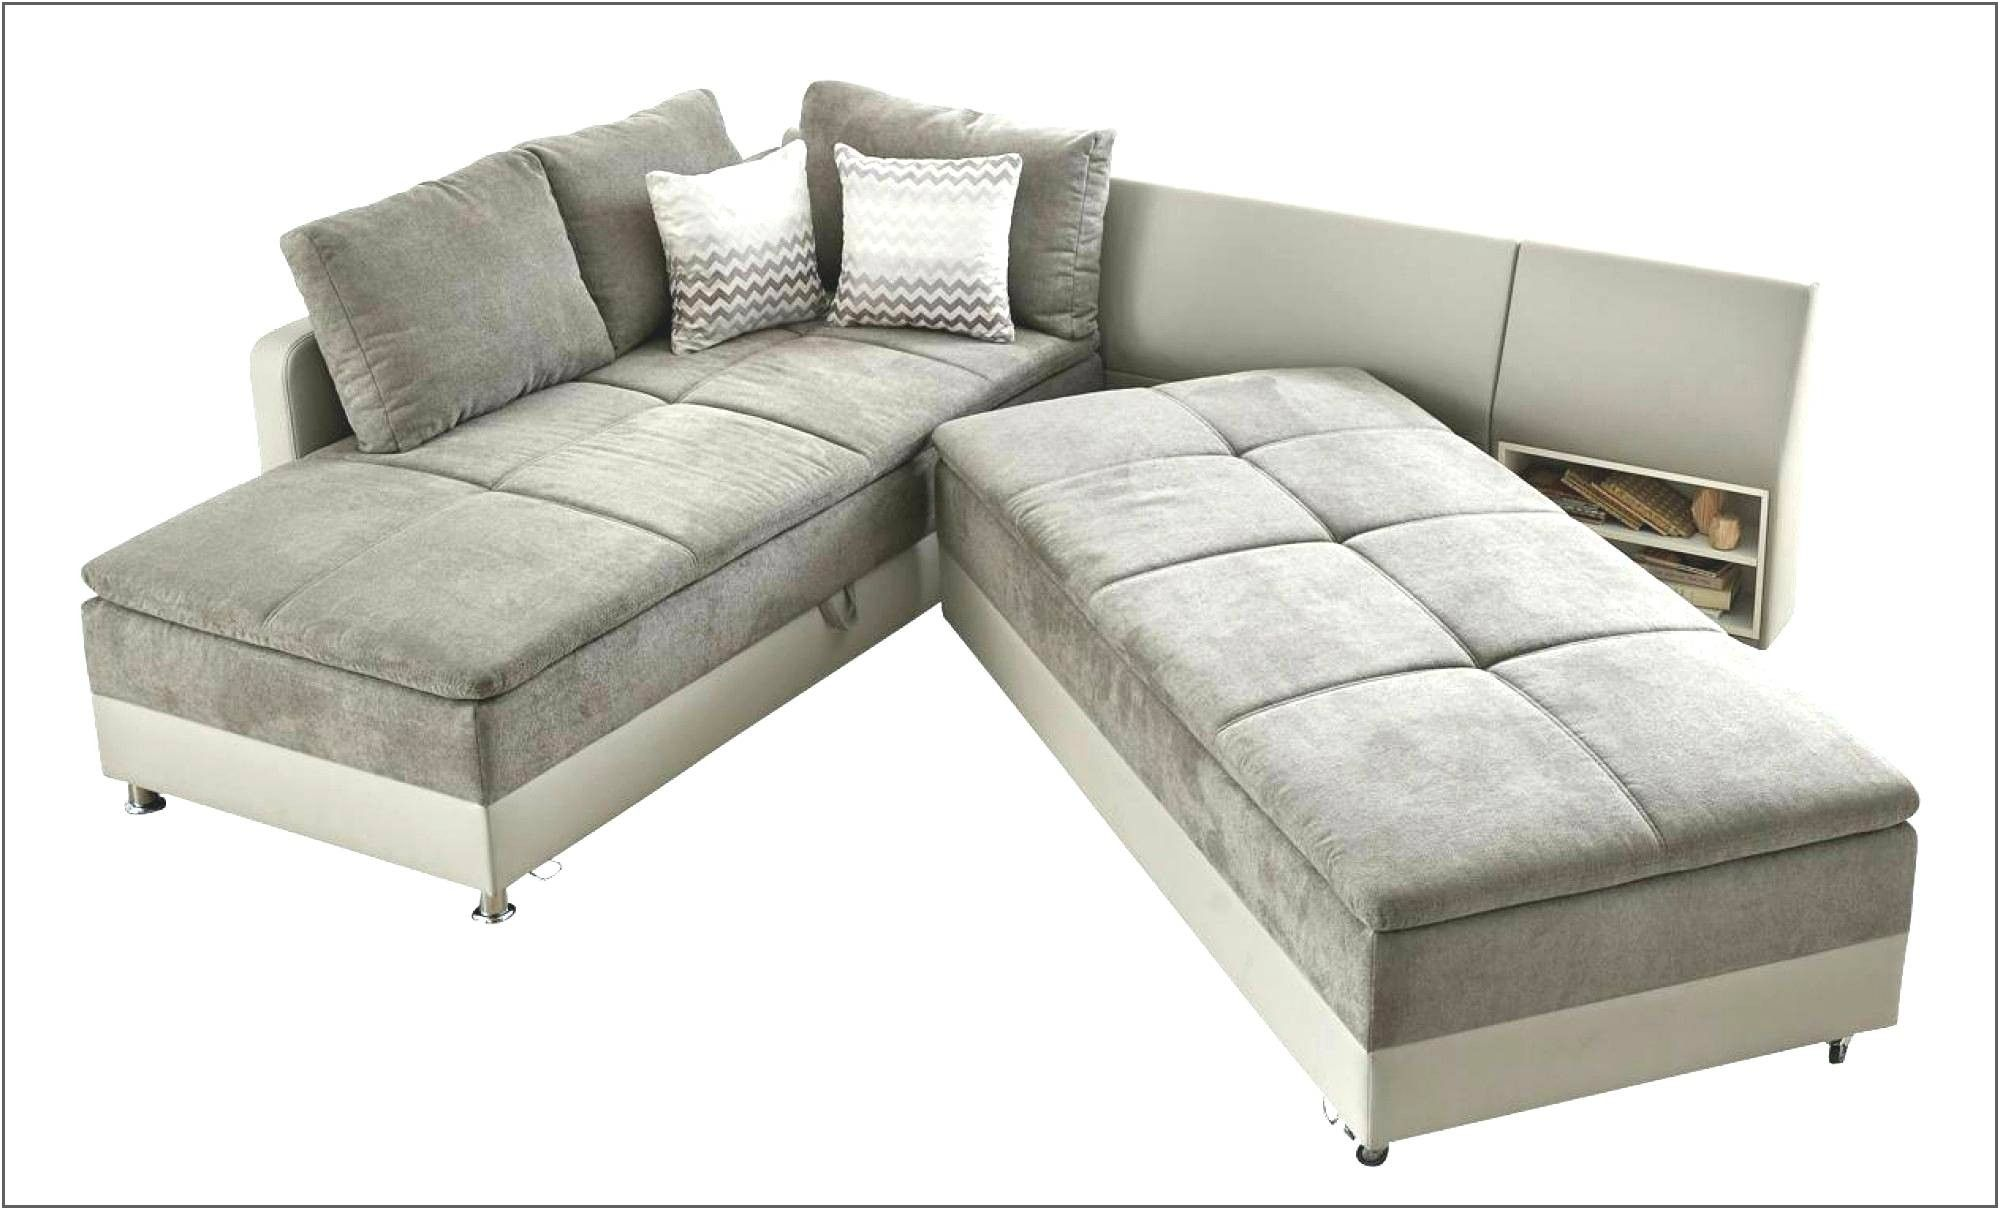 Big Sofa Gunstig Kaufen Sofa Best Sofa Gunstig Poco Hd Wallpaper S Di 2020 Dengan Gambar